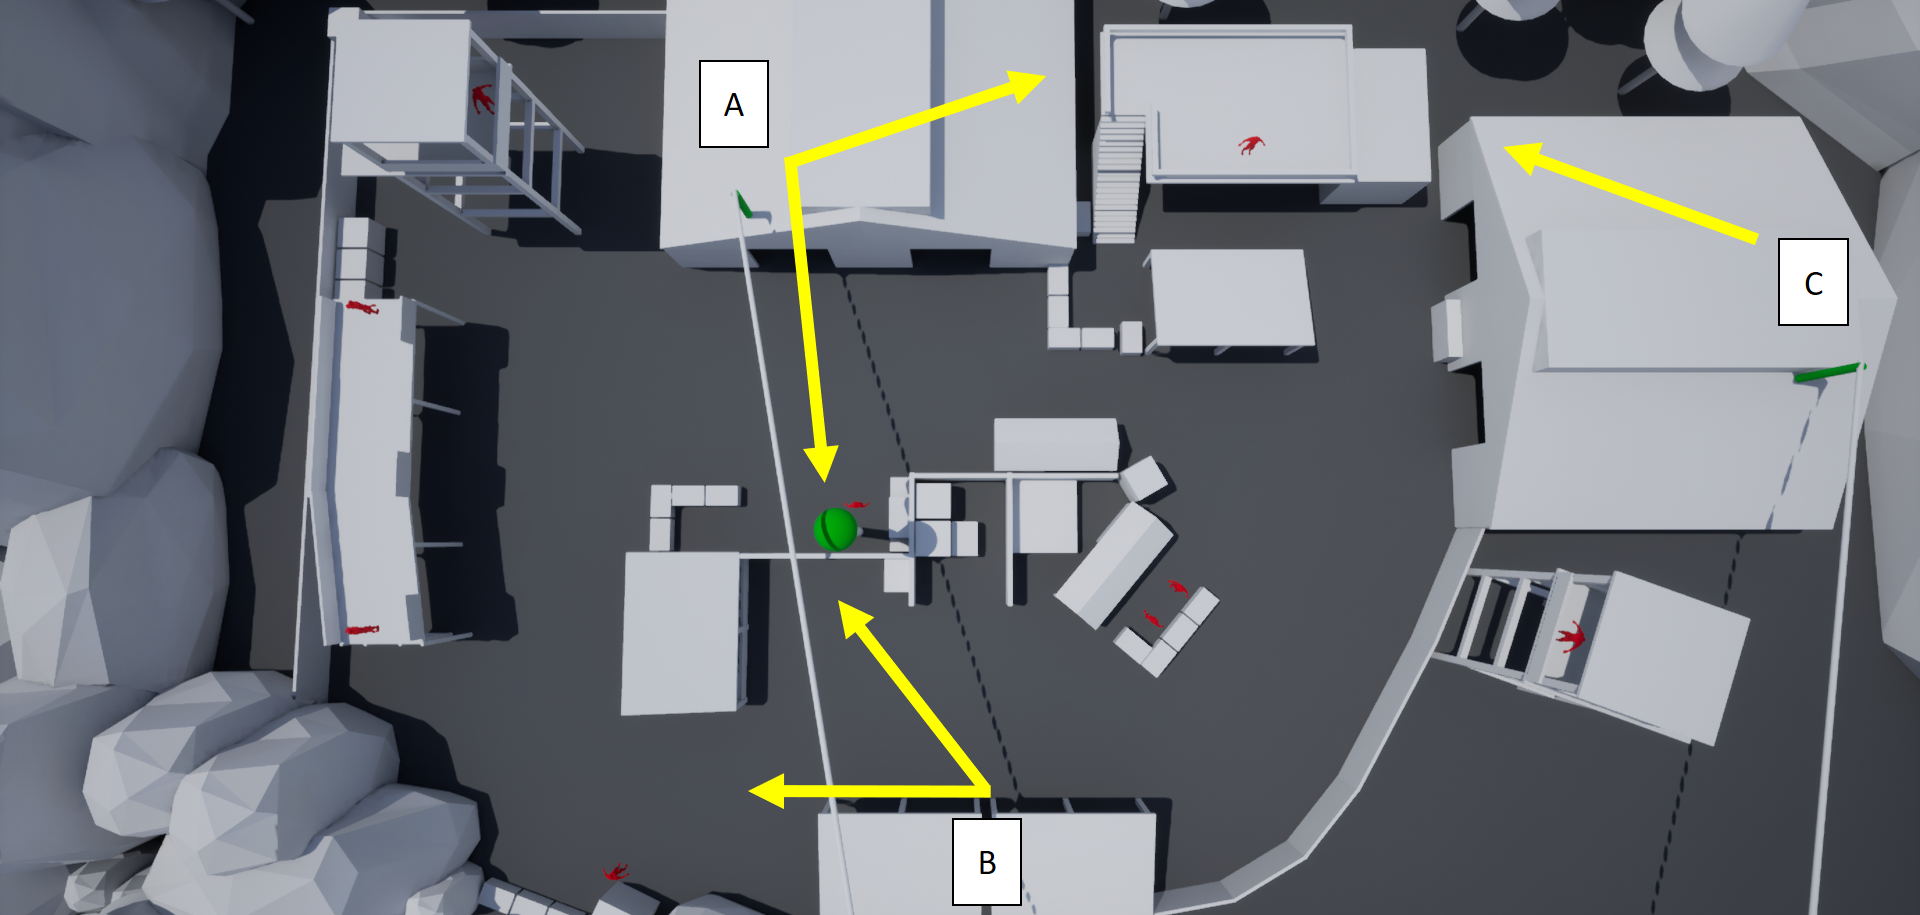 Main routes players will take based on their decided approach